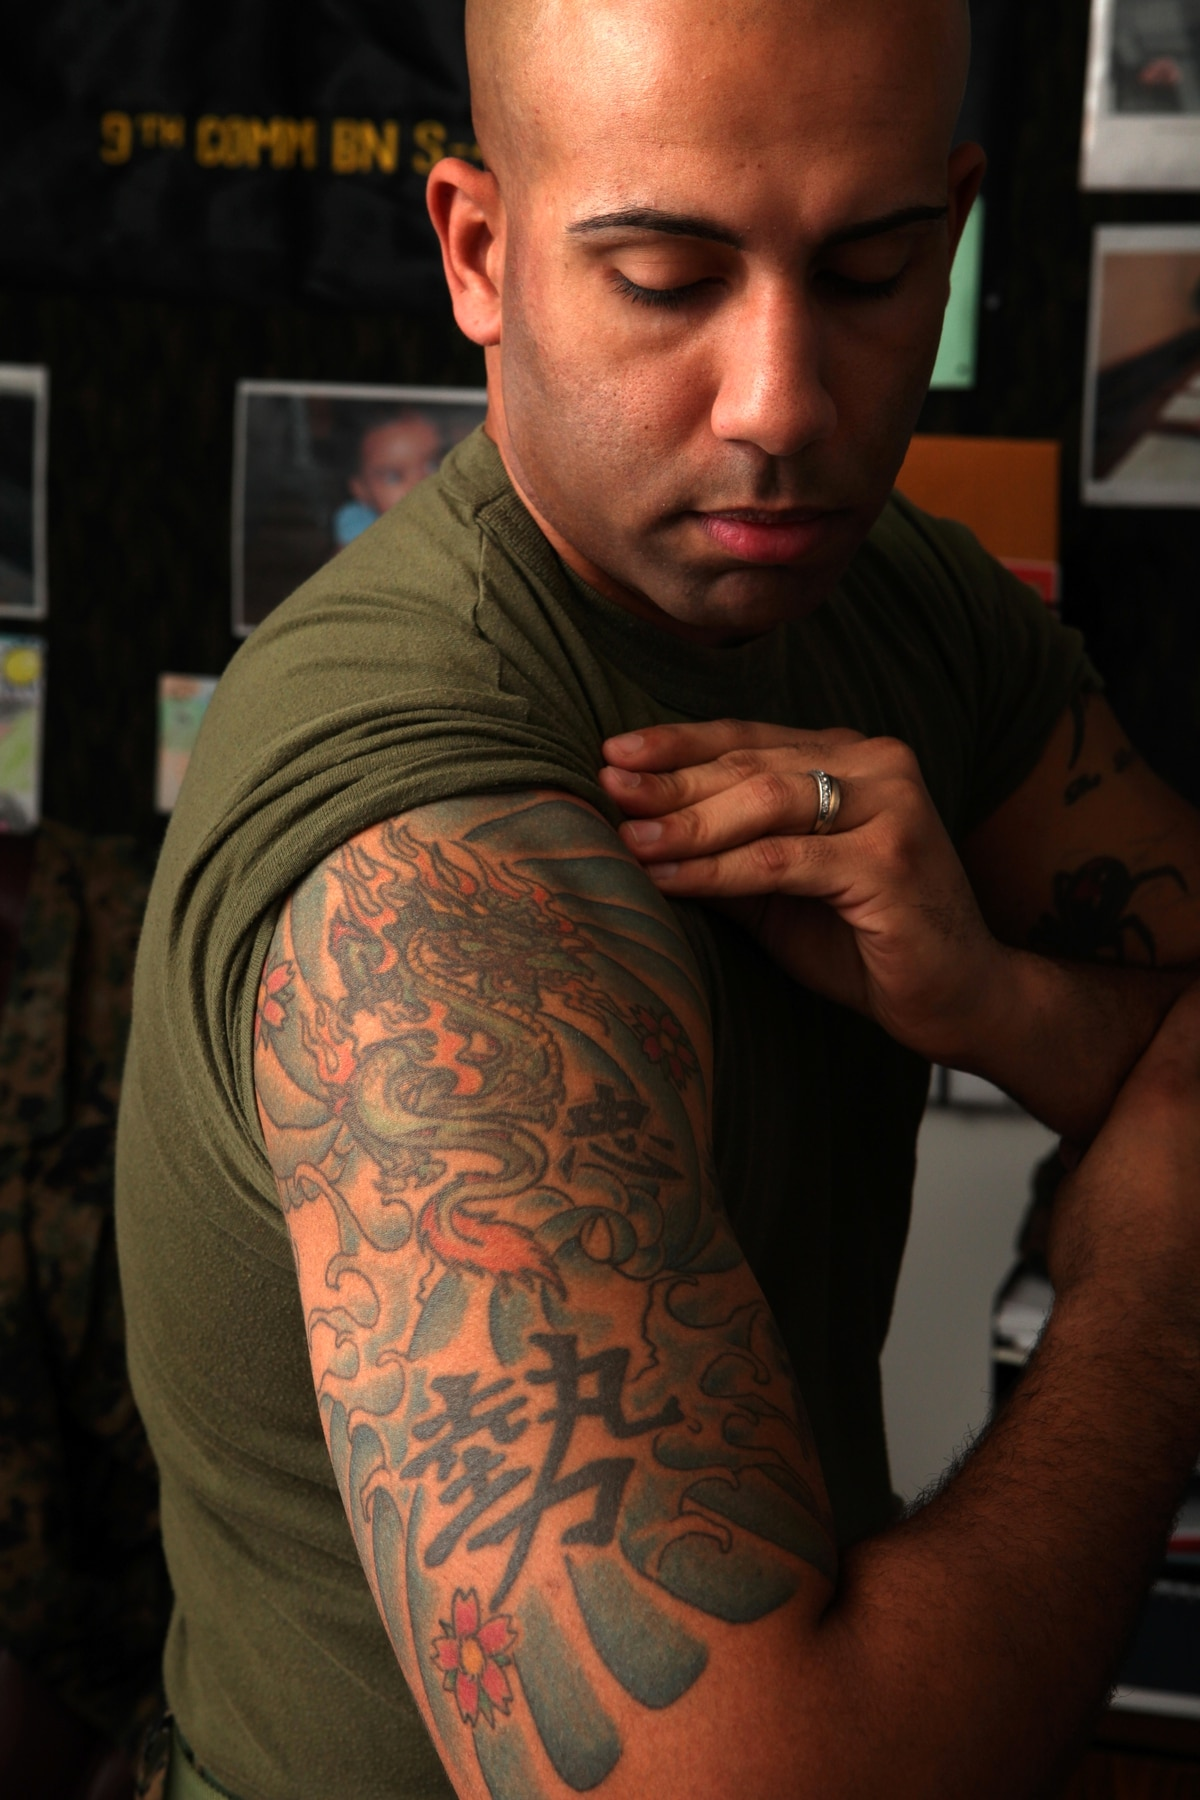 Marine corps to update its tattoo policy after review for Army tattoo policy wrist